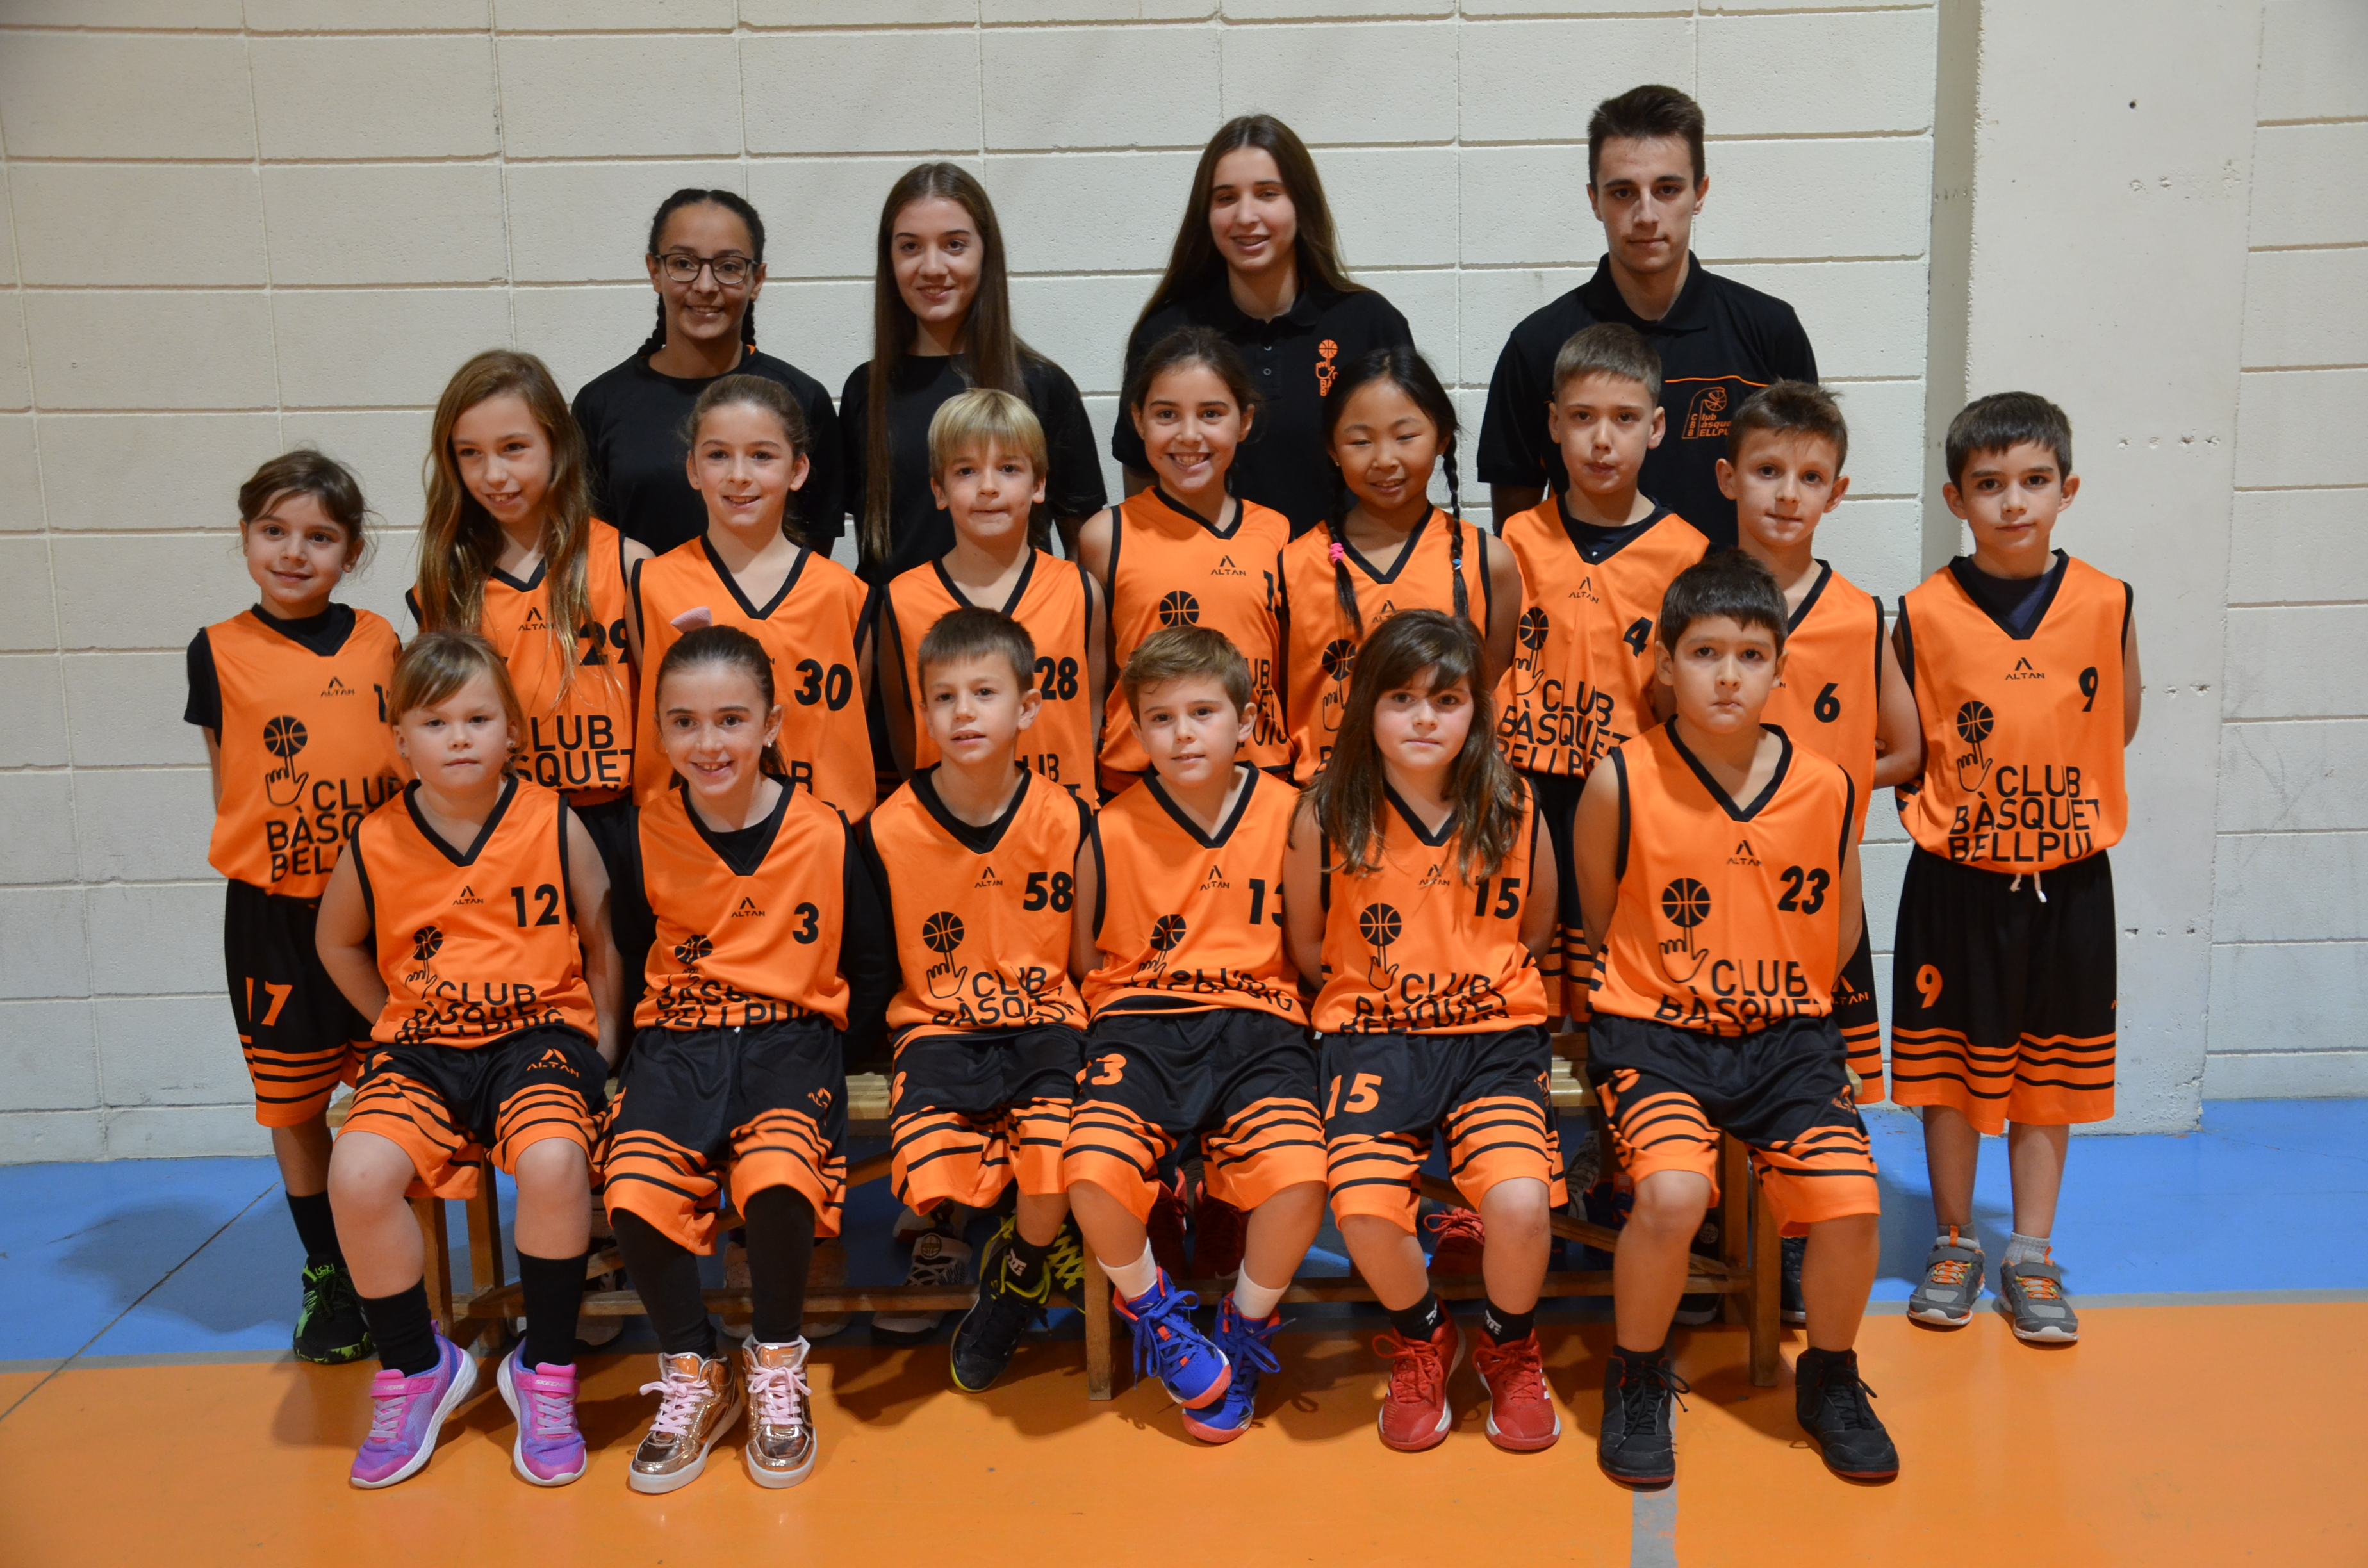 Pre-Mini Mixte Temp.2019-2020 Club Bàsquet Bellpuig